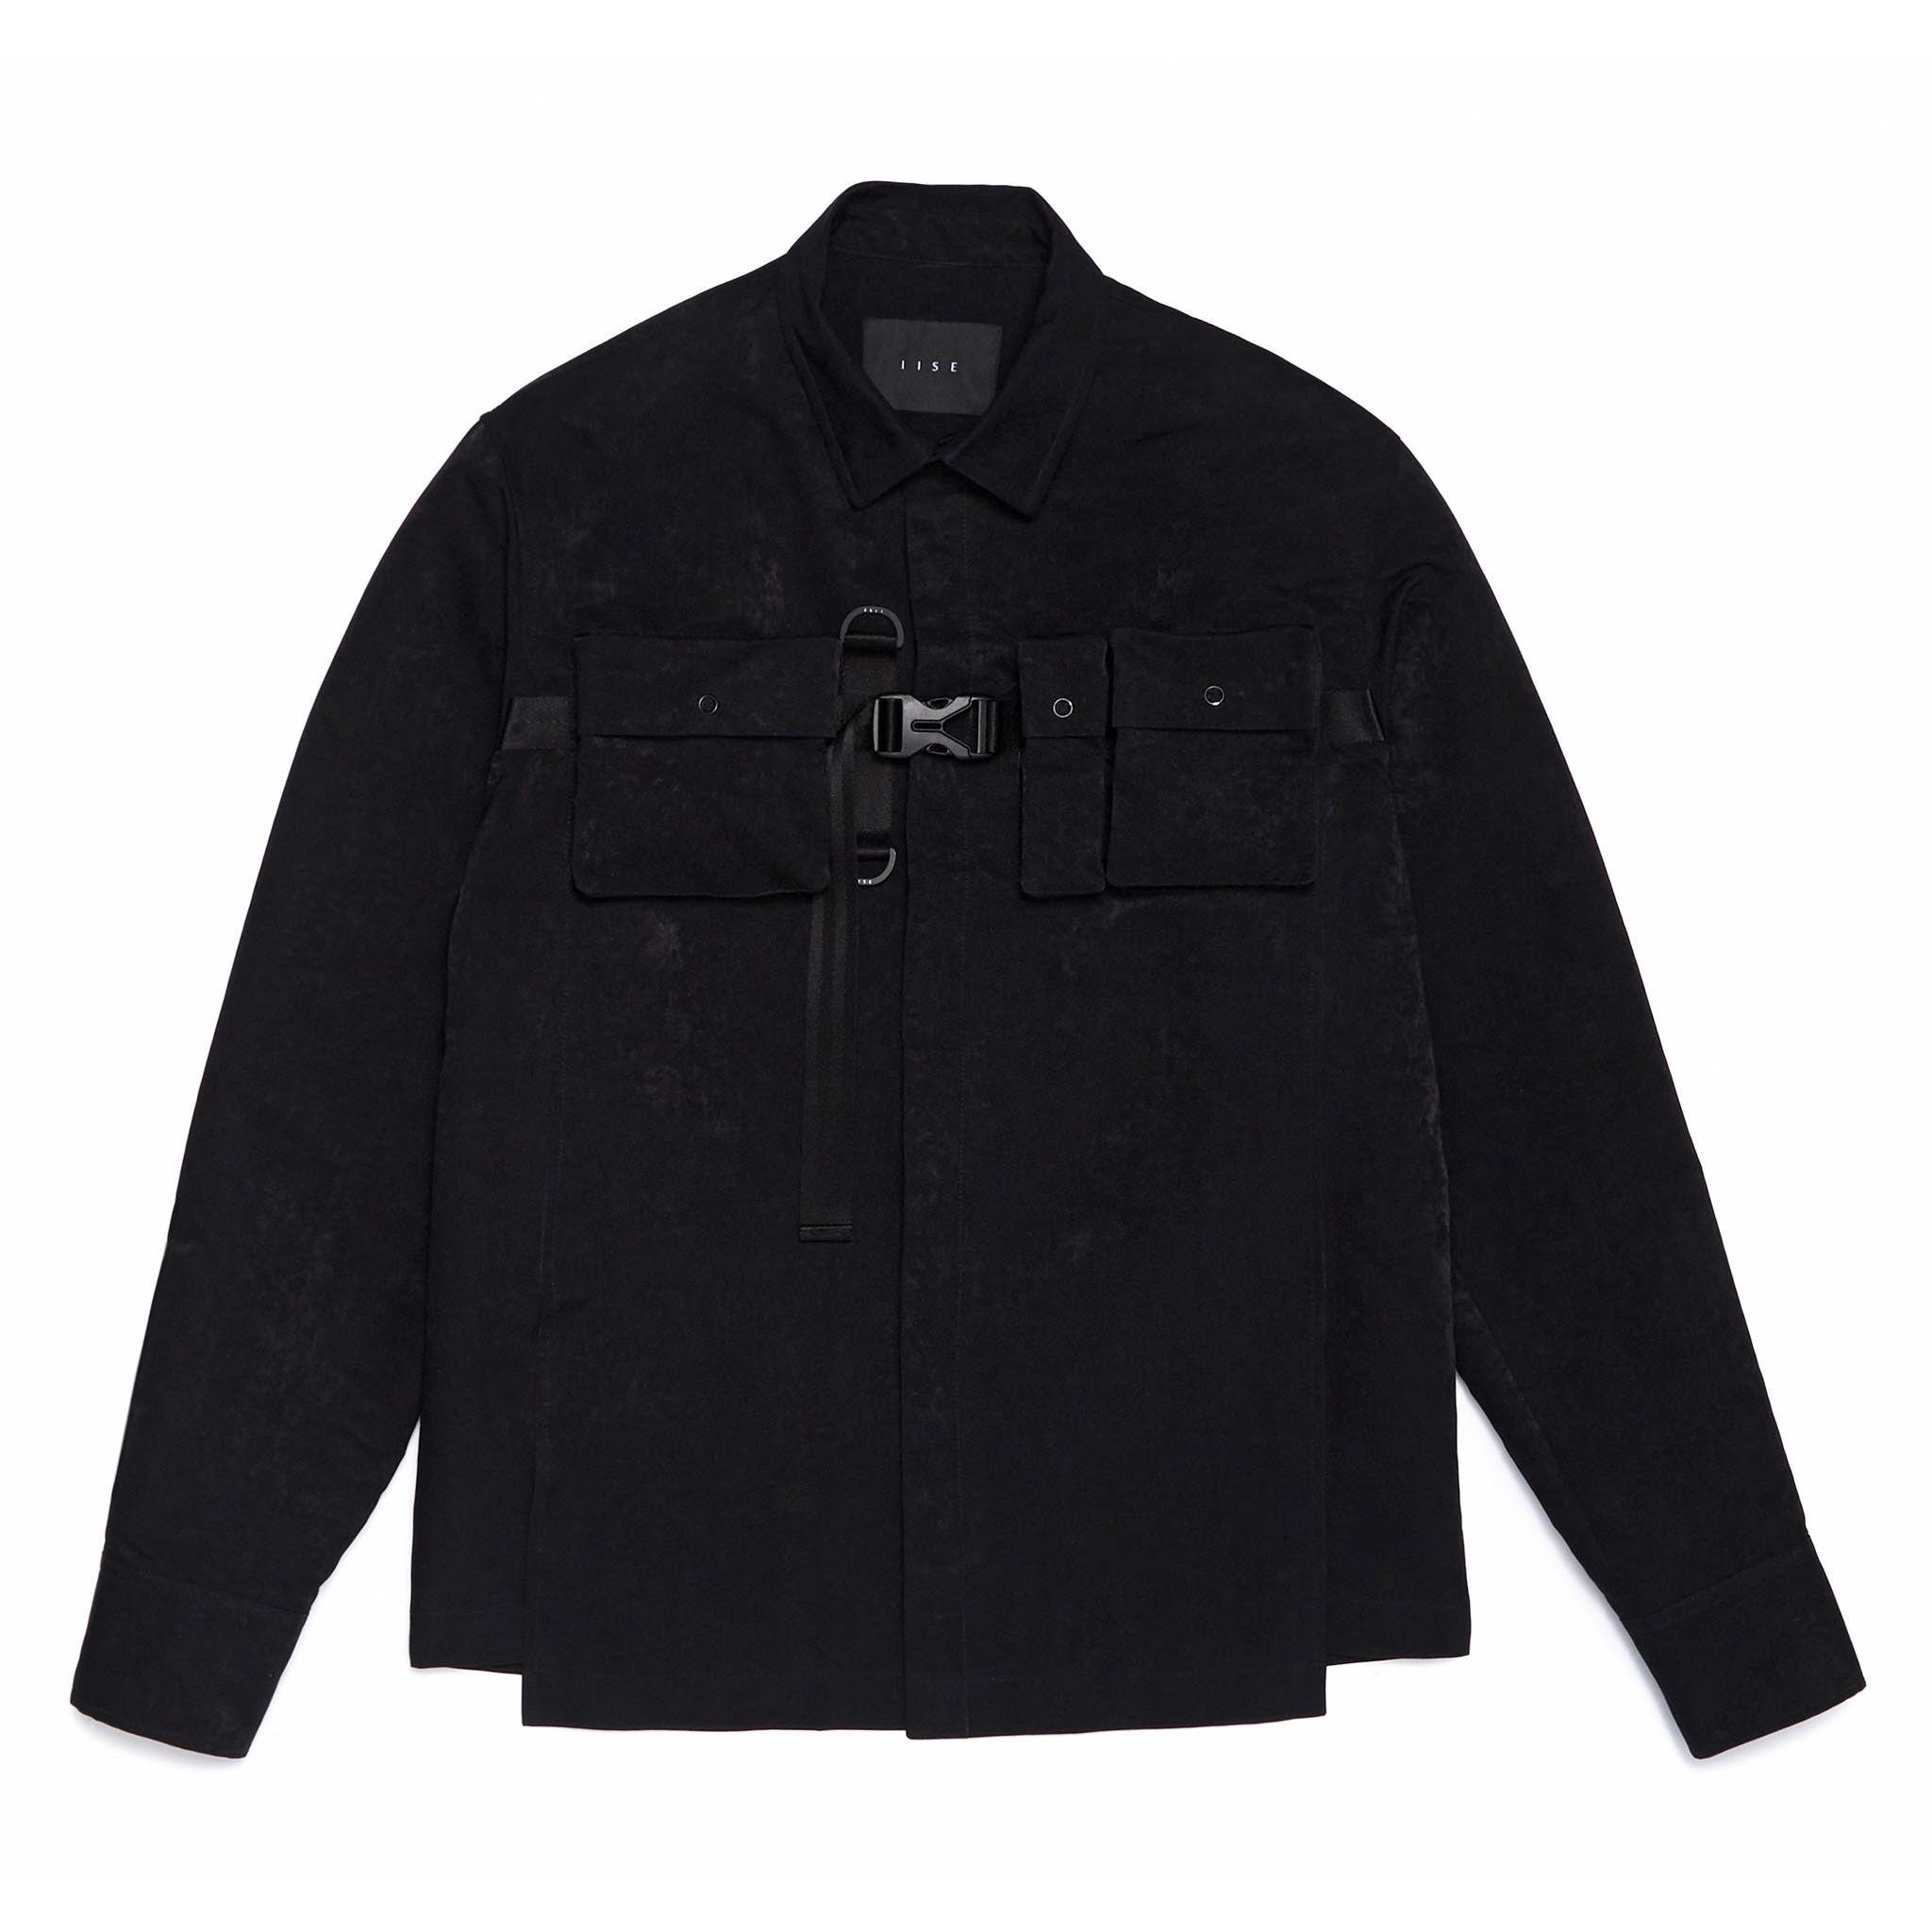 IISE Utility Long Sleeve Overshirt Black